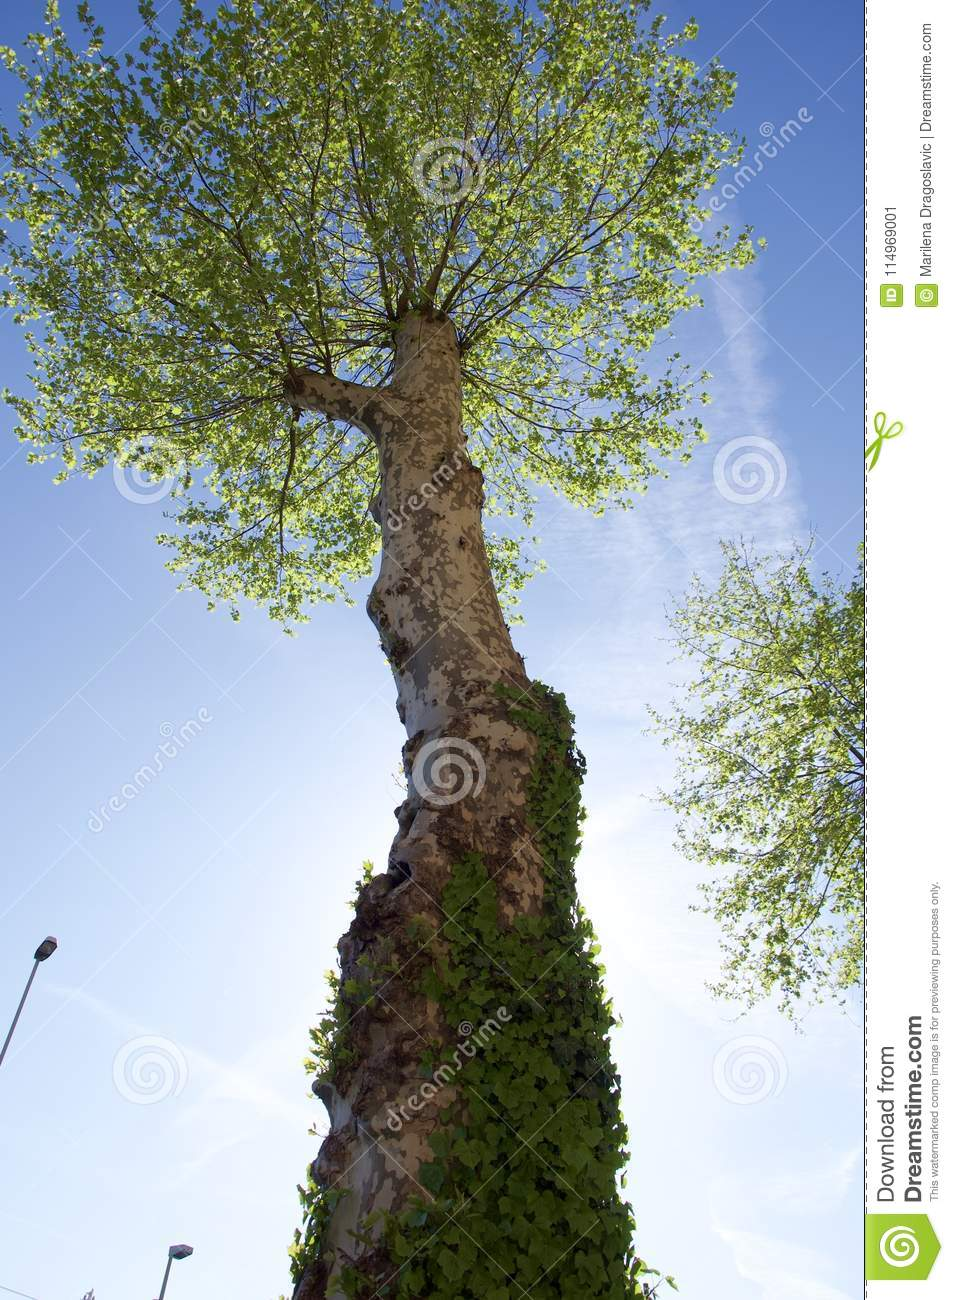 Giant urban tree from frog perspective